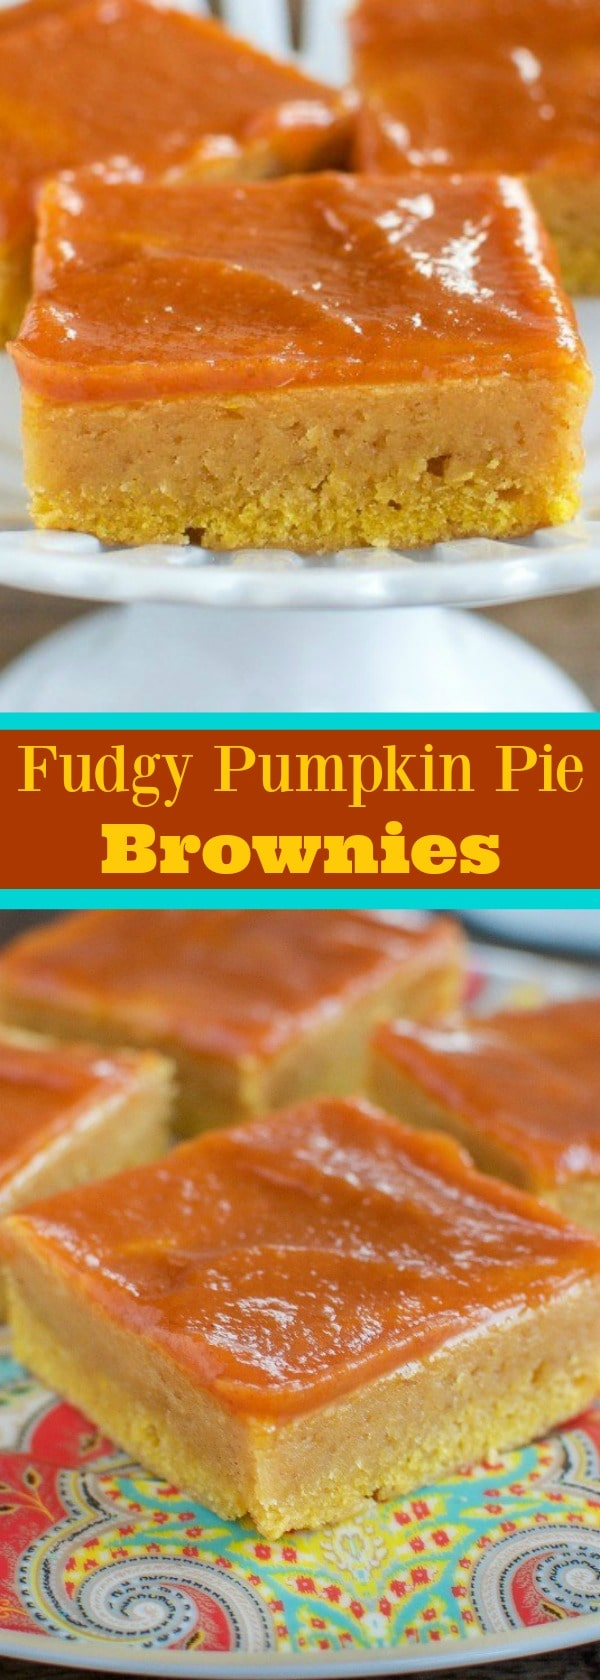 fudgy-pumpkin-pie-brownies